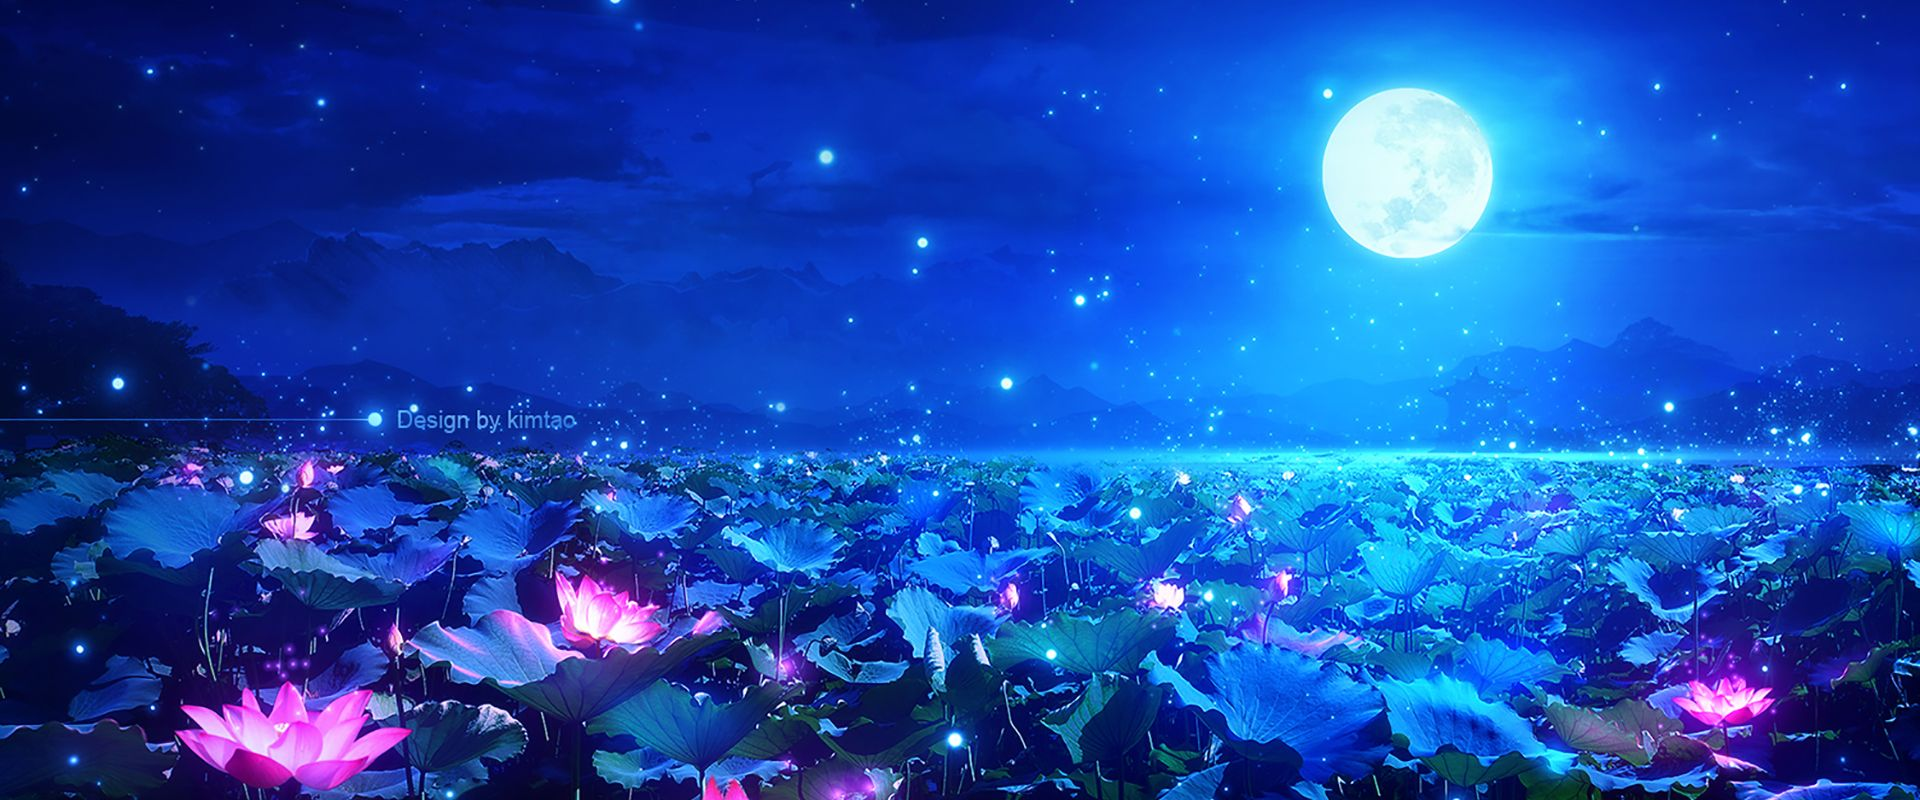 Mar 30, 2021· mar 30, 2021· tons of awesome pink flower aesthetic anime wallpapers to download for free. Mid Autumn Festival   Anime background, Fantasy art